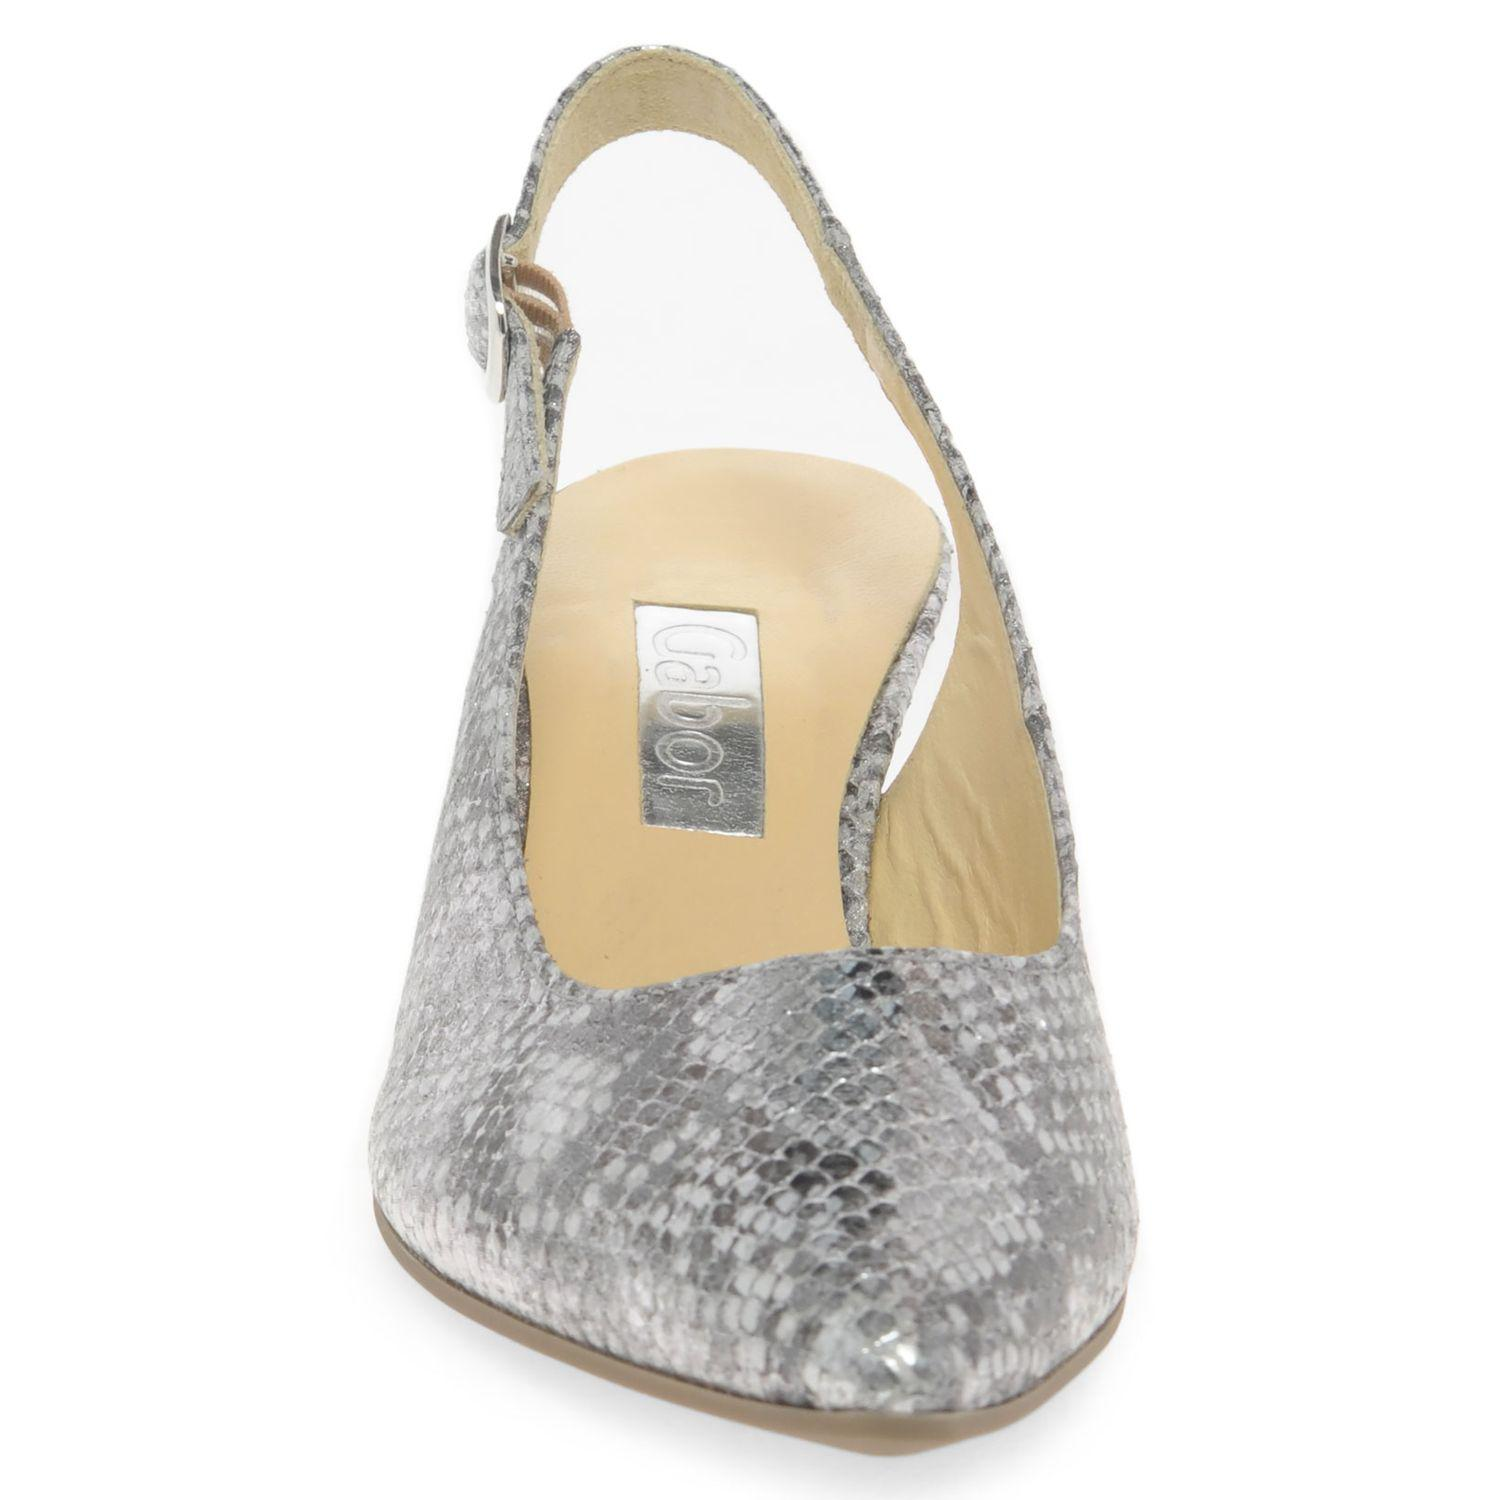 7060f594c36 John Lewis Gabor Hume 2 Slingback Court Shoes in Metallic - Lyst